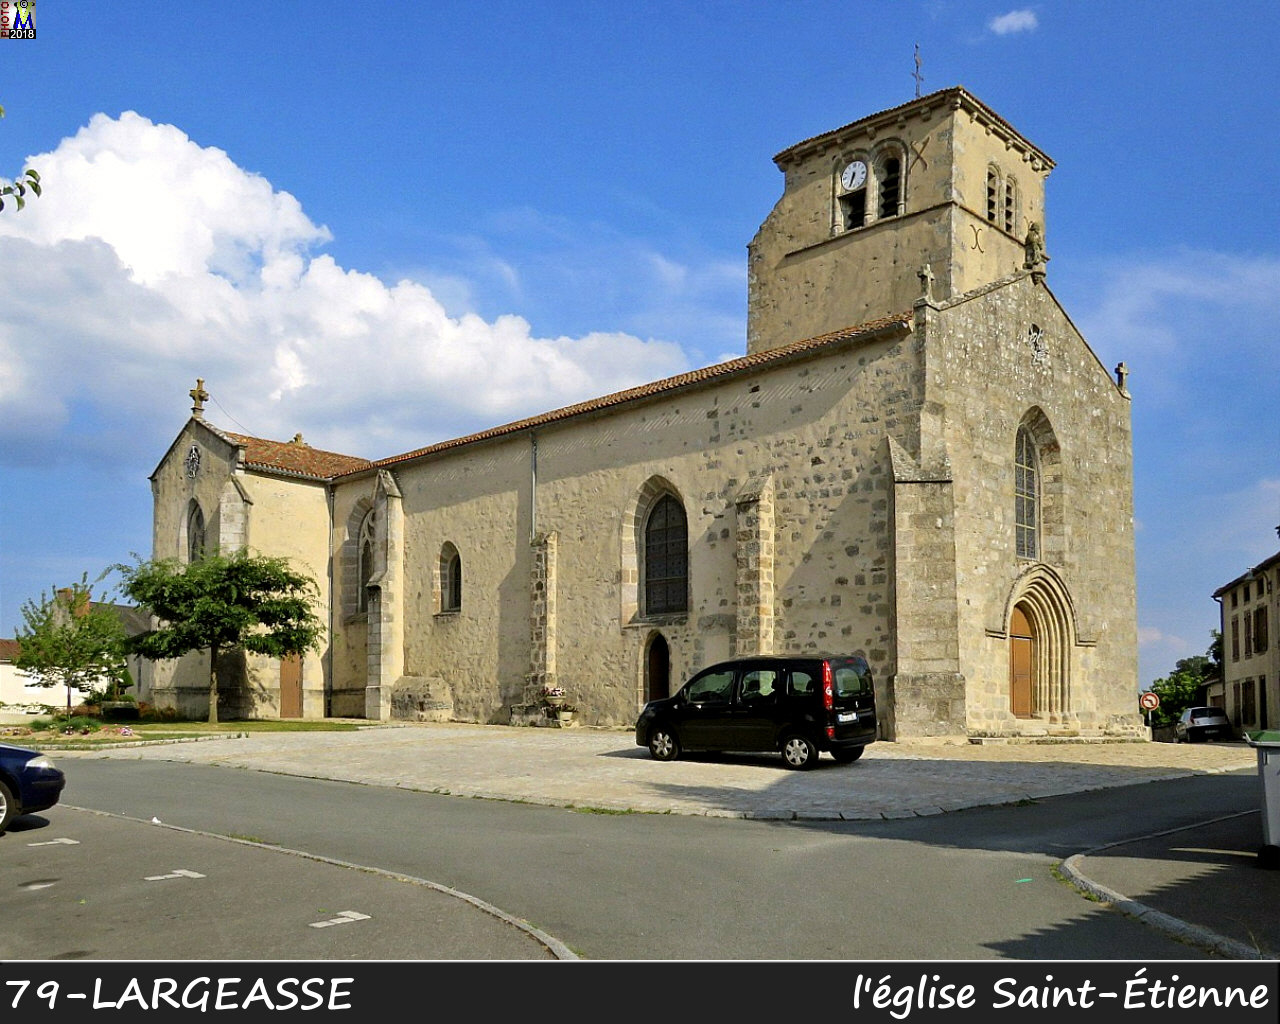 79LARGEASSE_eglise_1000.jpg